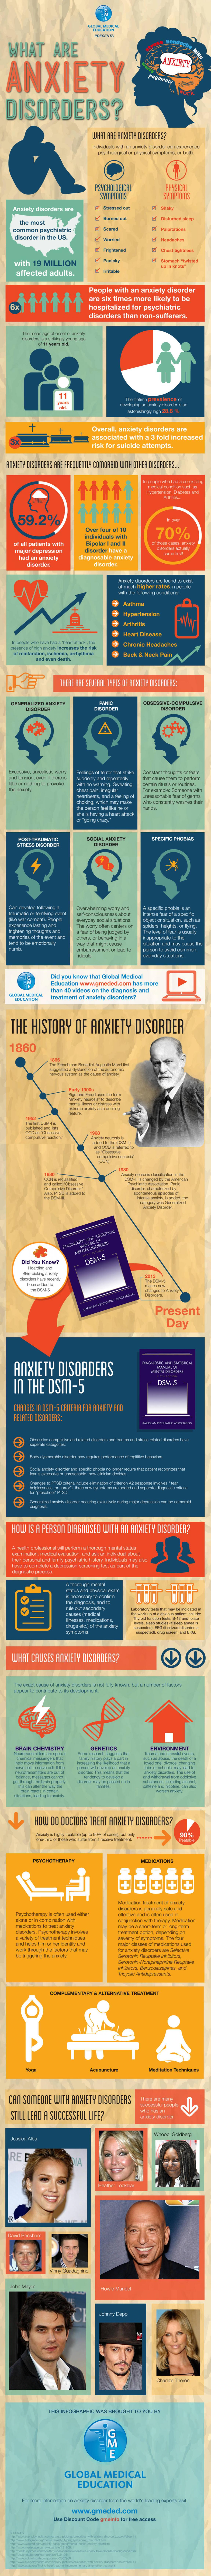 Guide to Anxiety Disorders